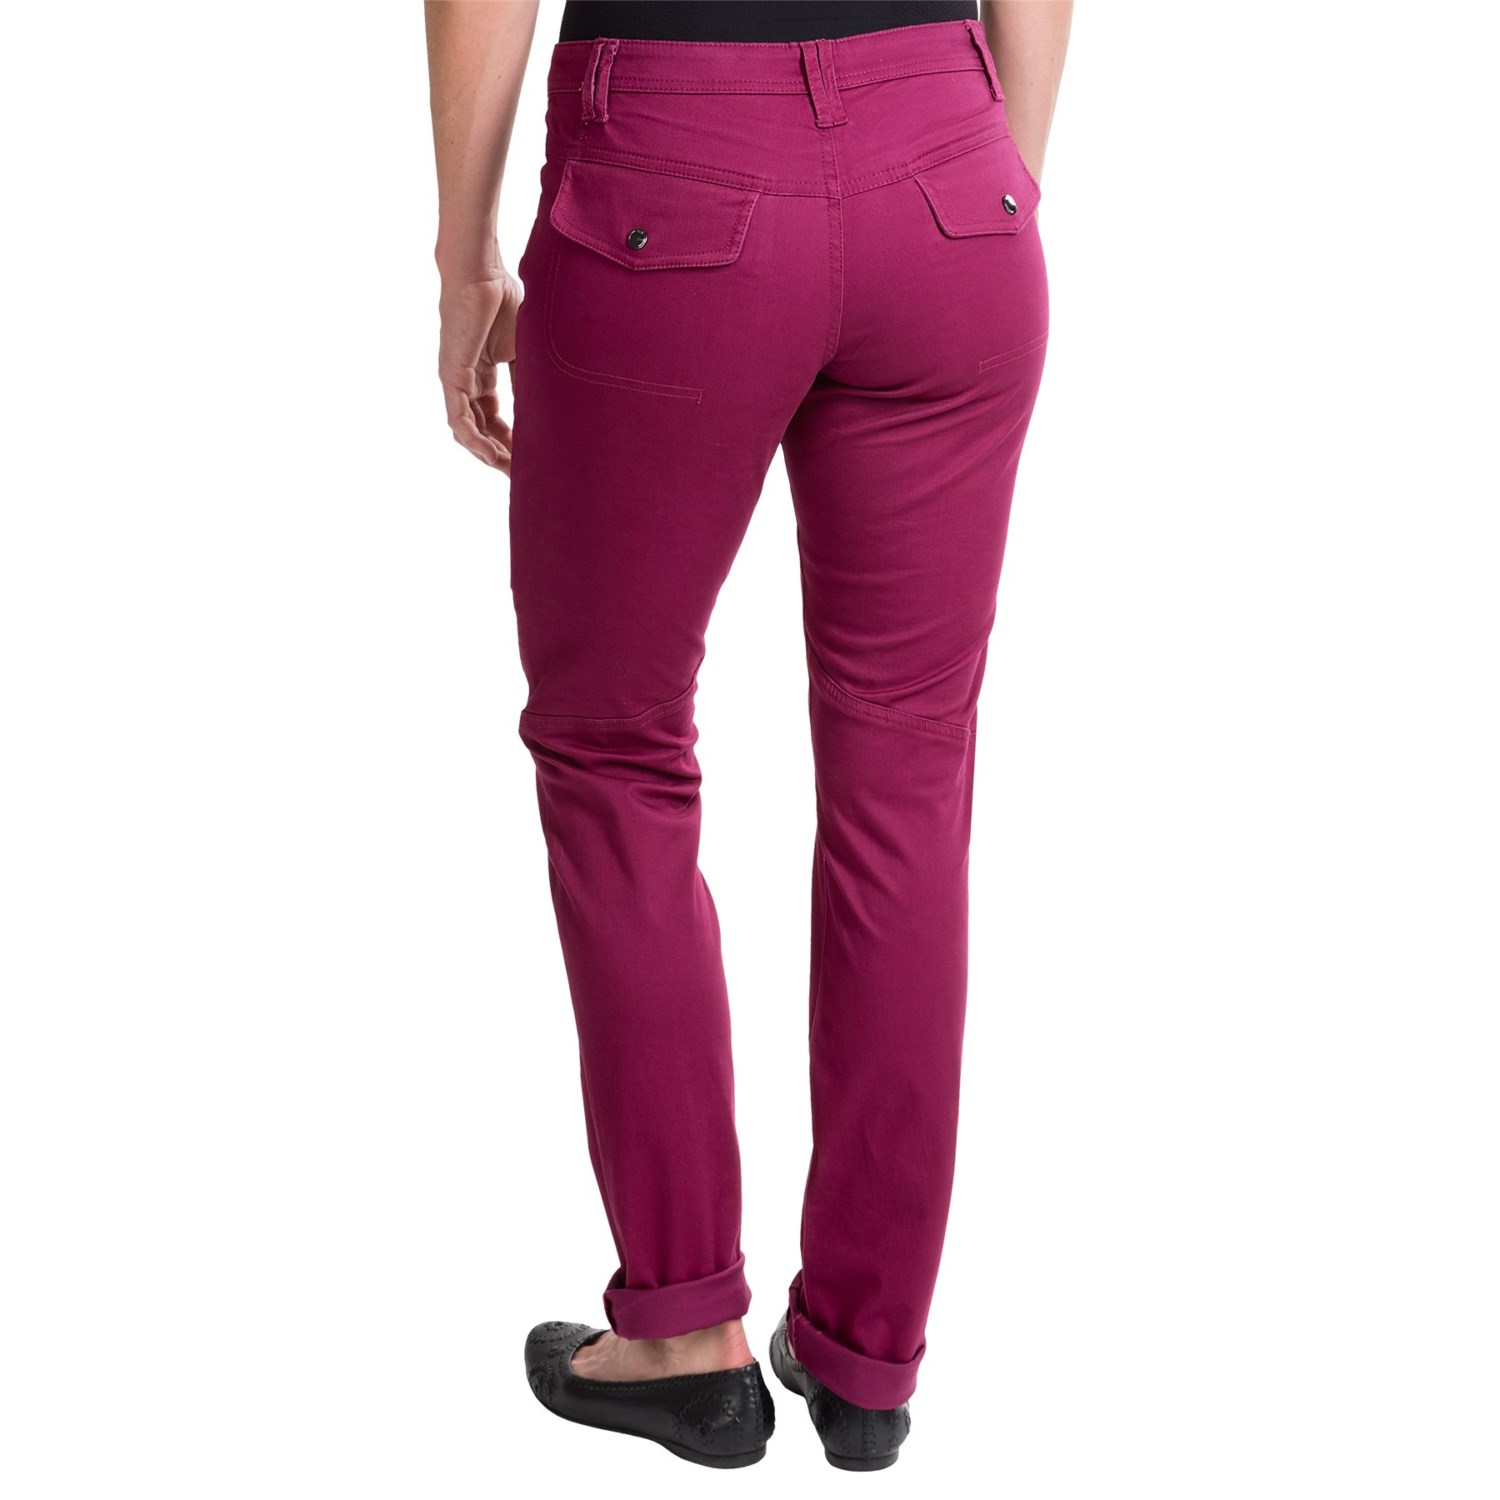 Lastest Now I Understand Where Women Are Coming From When They Complain  Is To Wear Summerfriendly Pants Including Lightweight Chinos Chinos In Particular Come